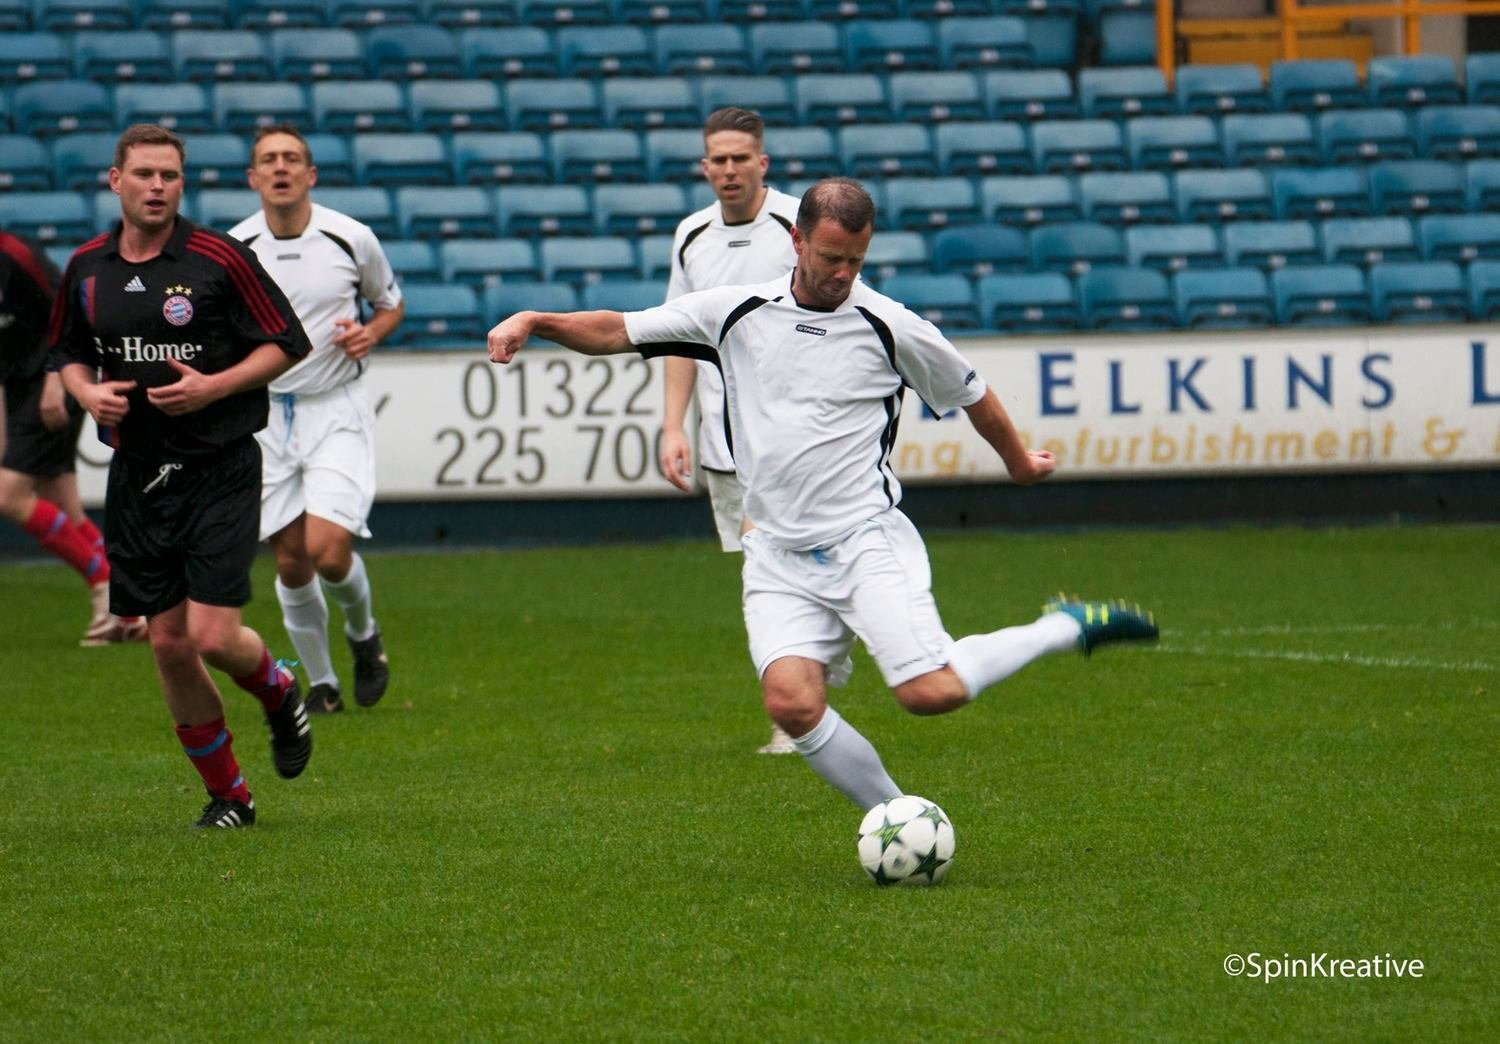 DEPOSIT: ONE SPORTING CITY: FOOTBALL LEGENDS DAY